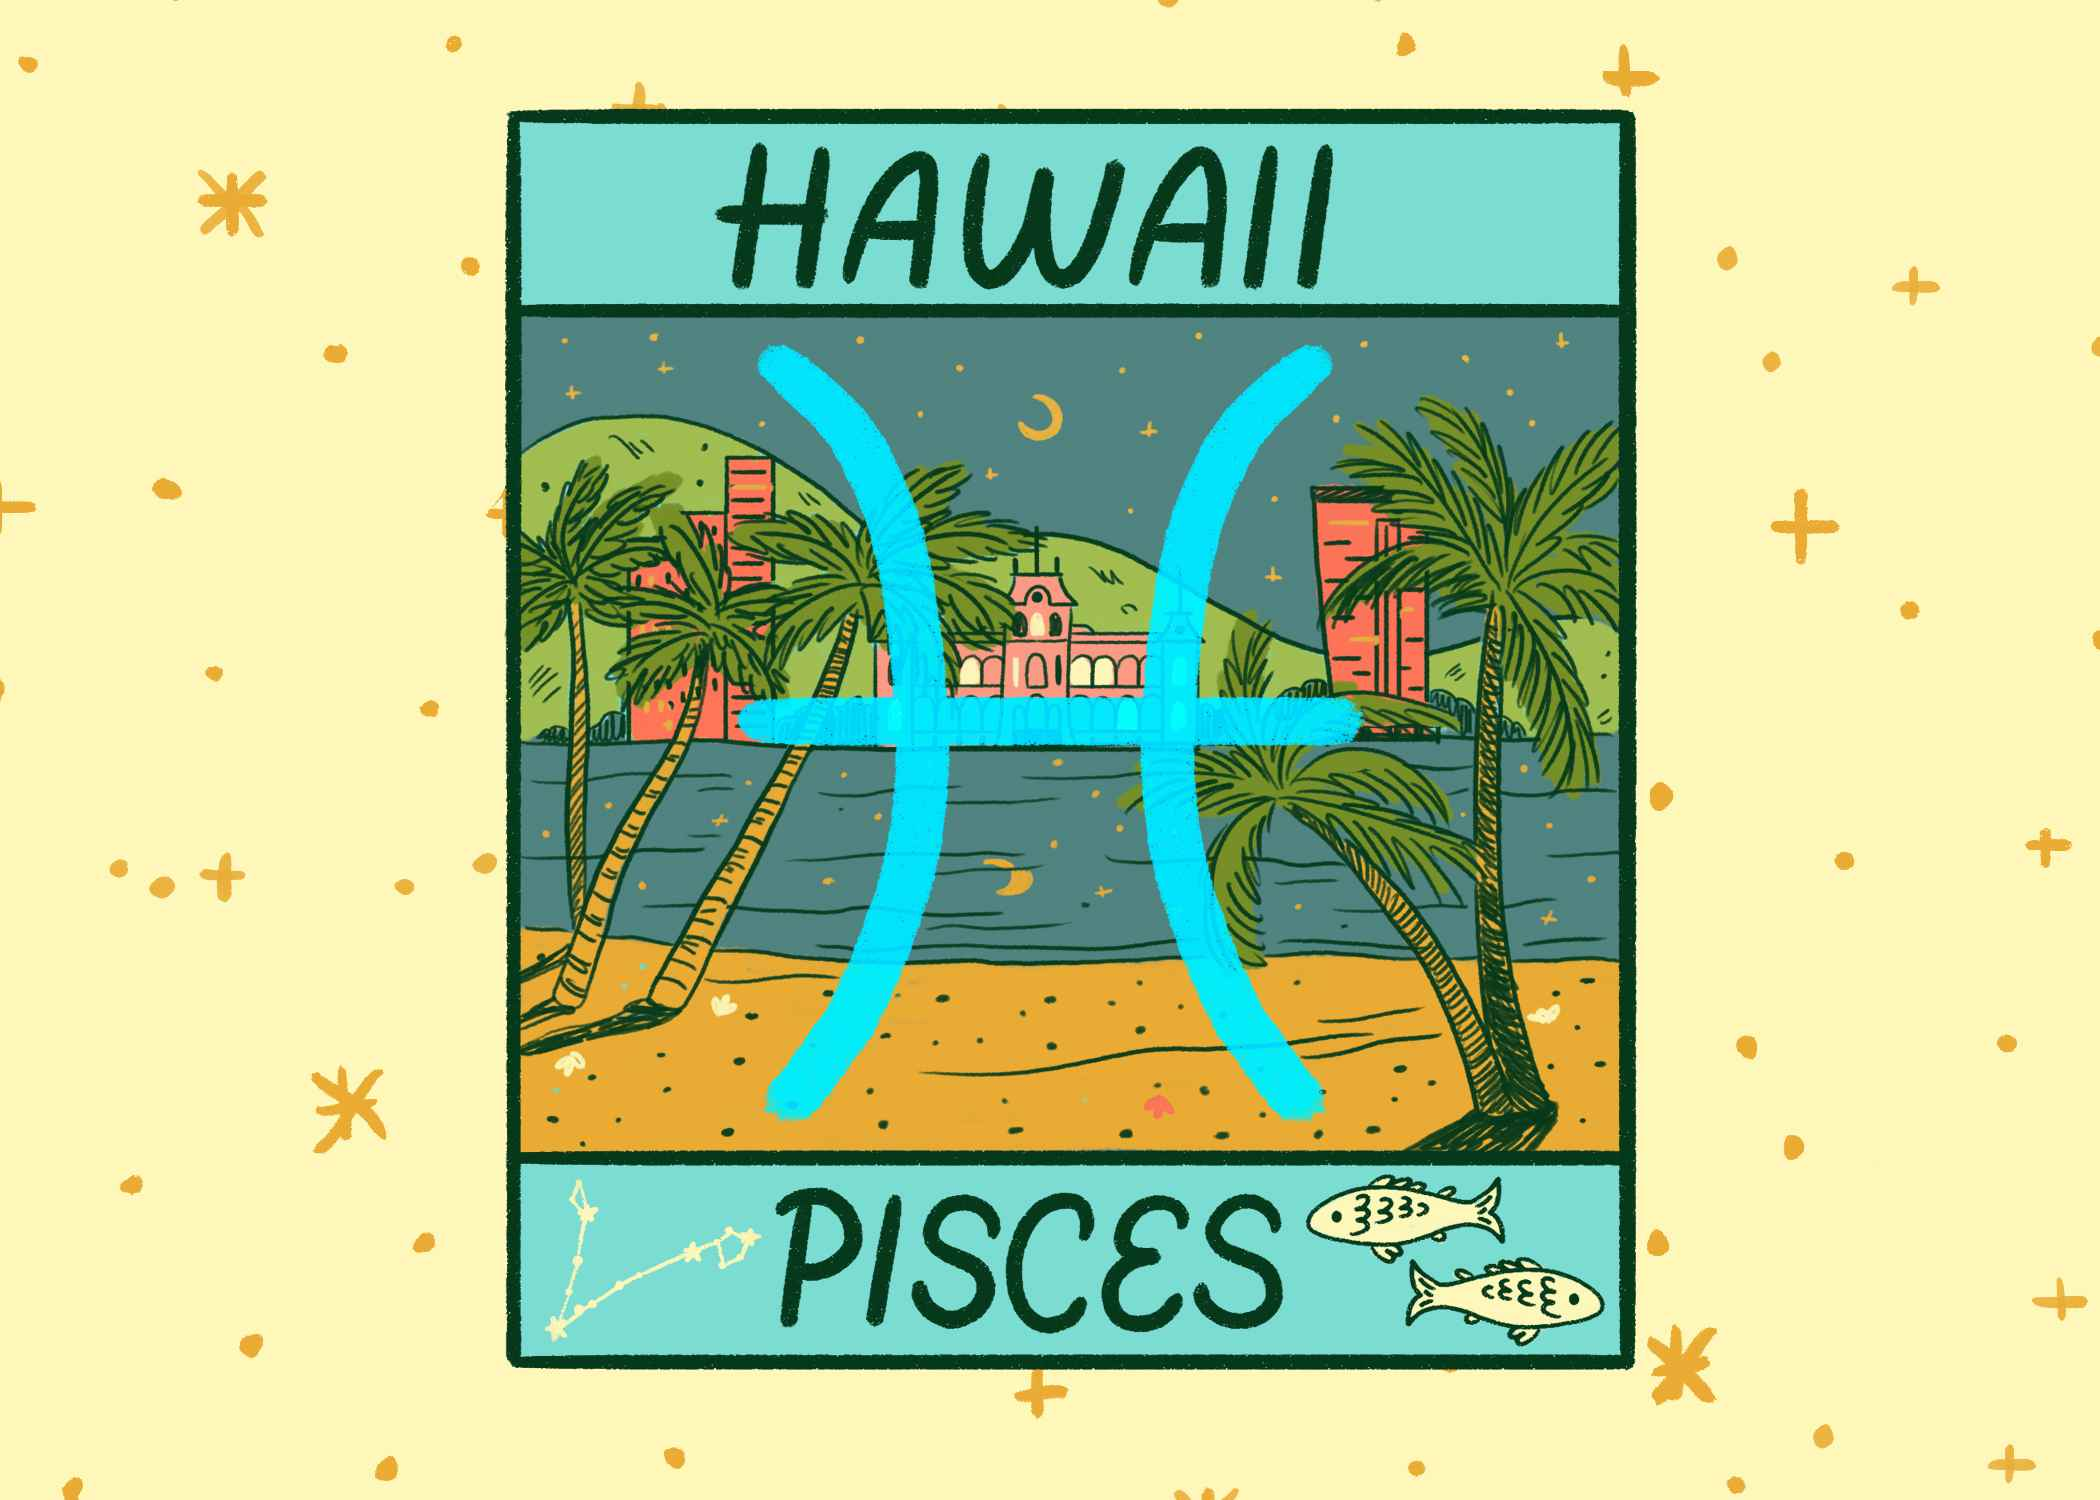 Illustration of Hawaii and Pisces